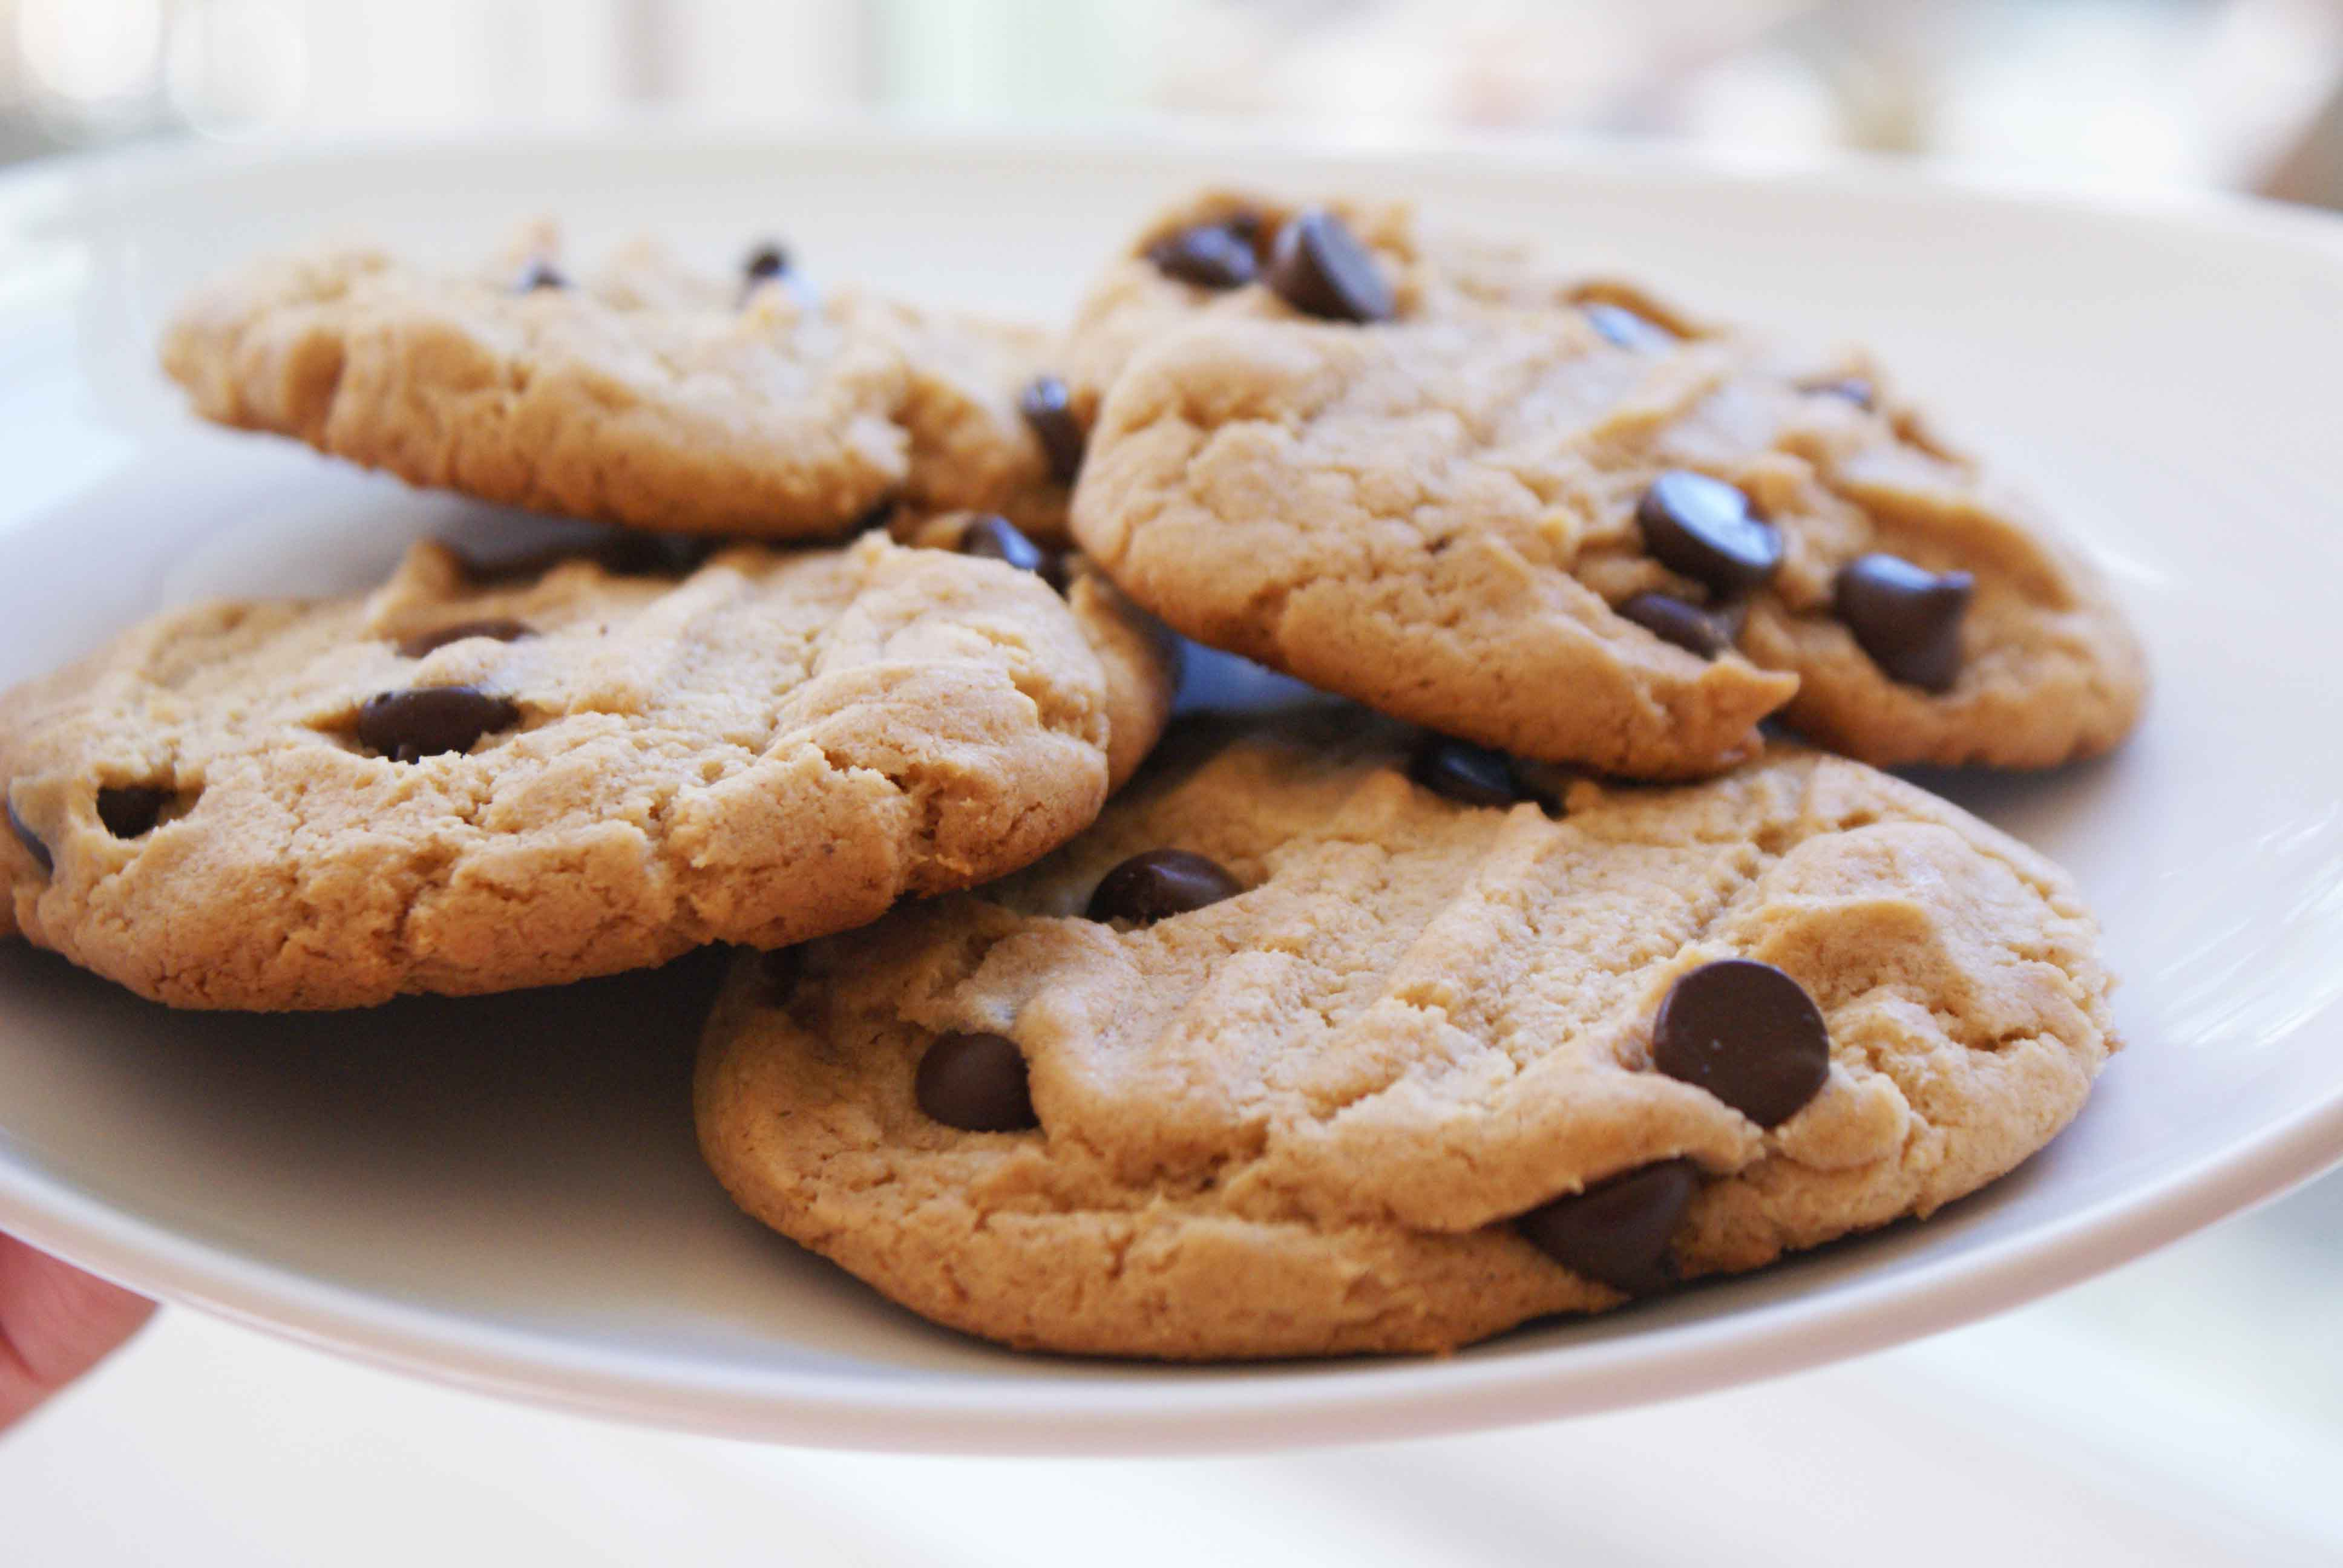 Get Your Free Cookies On National Cookie Day! | LATF USA